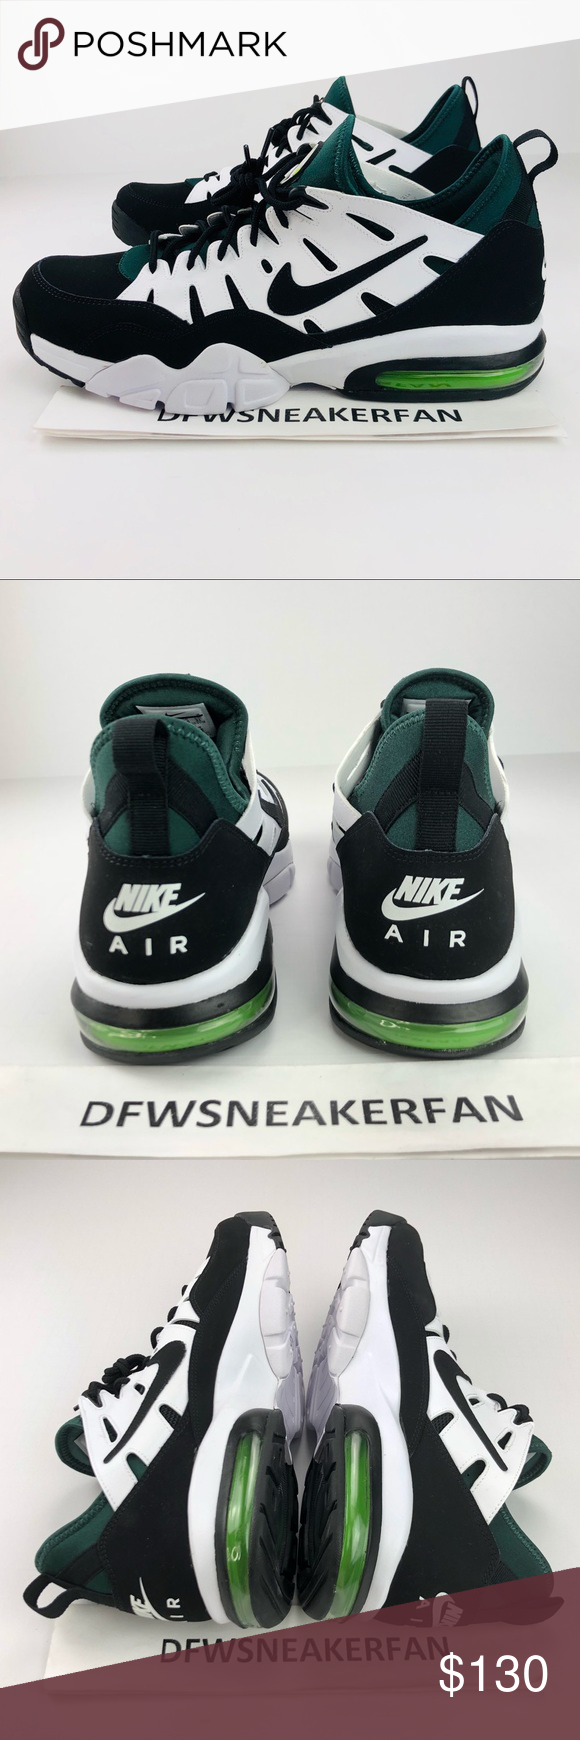 on sale 9f95b c2cd0 Nike Air Max '94 Retro Mens's various Sizes New Without Box Mens Size 9,  9.5,10,11.5,12, 13 100% Authentic Fast Shipping Nike Shoes Sneakers